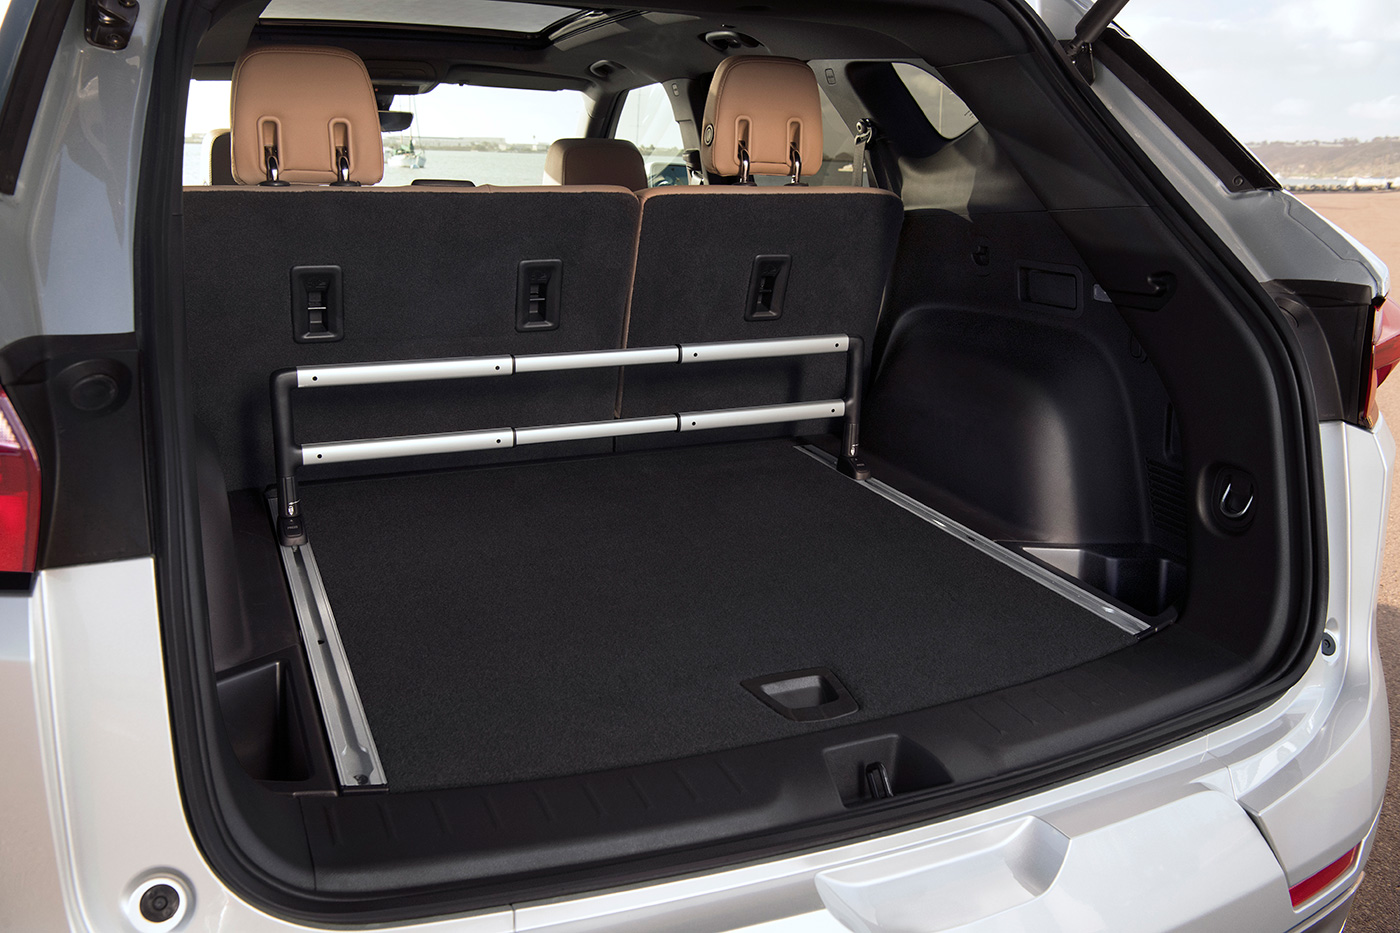 2019 Chevy Blazer - Trunk Space